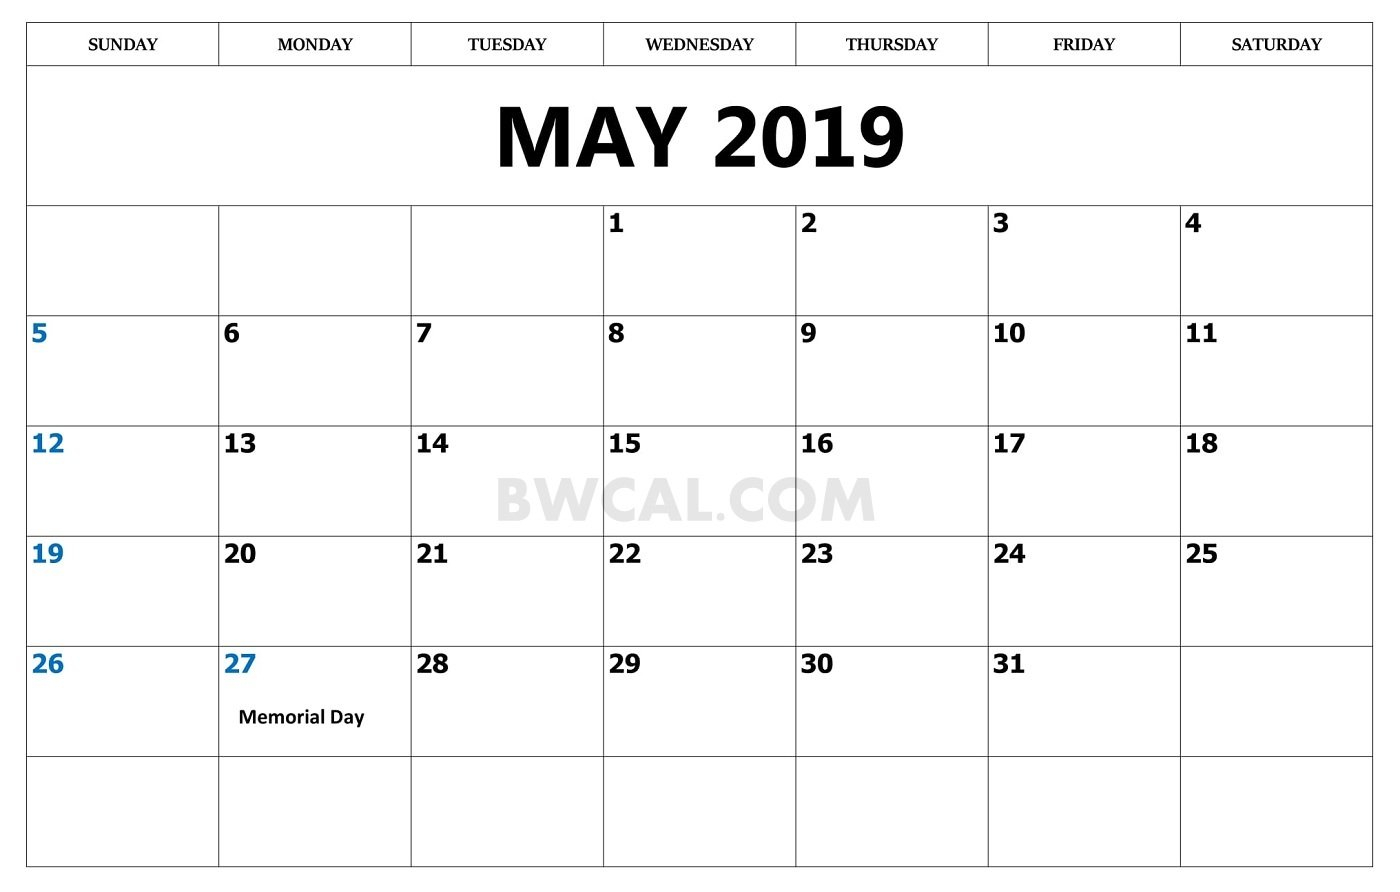 May 2019 Calendar Usa Archives - Blank And White Calendar Calendar 2019 Memorial Day